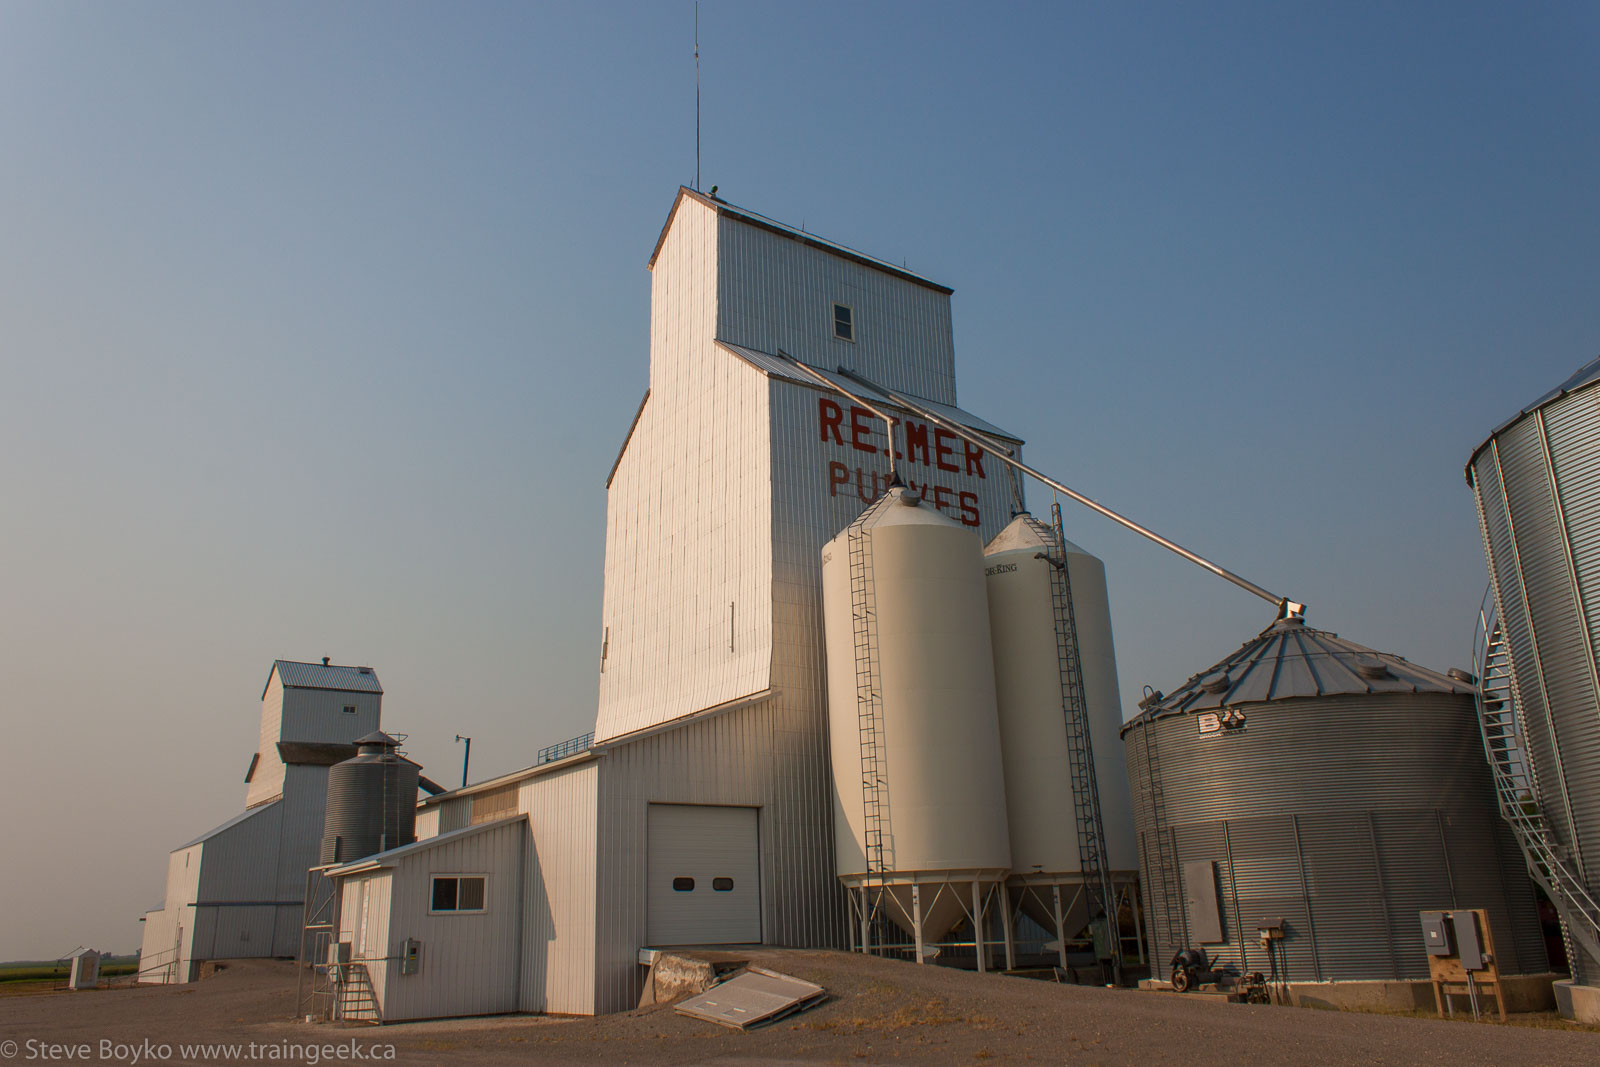 The Purves grain elevator 2014/07/20